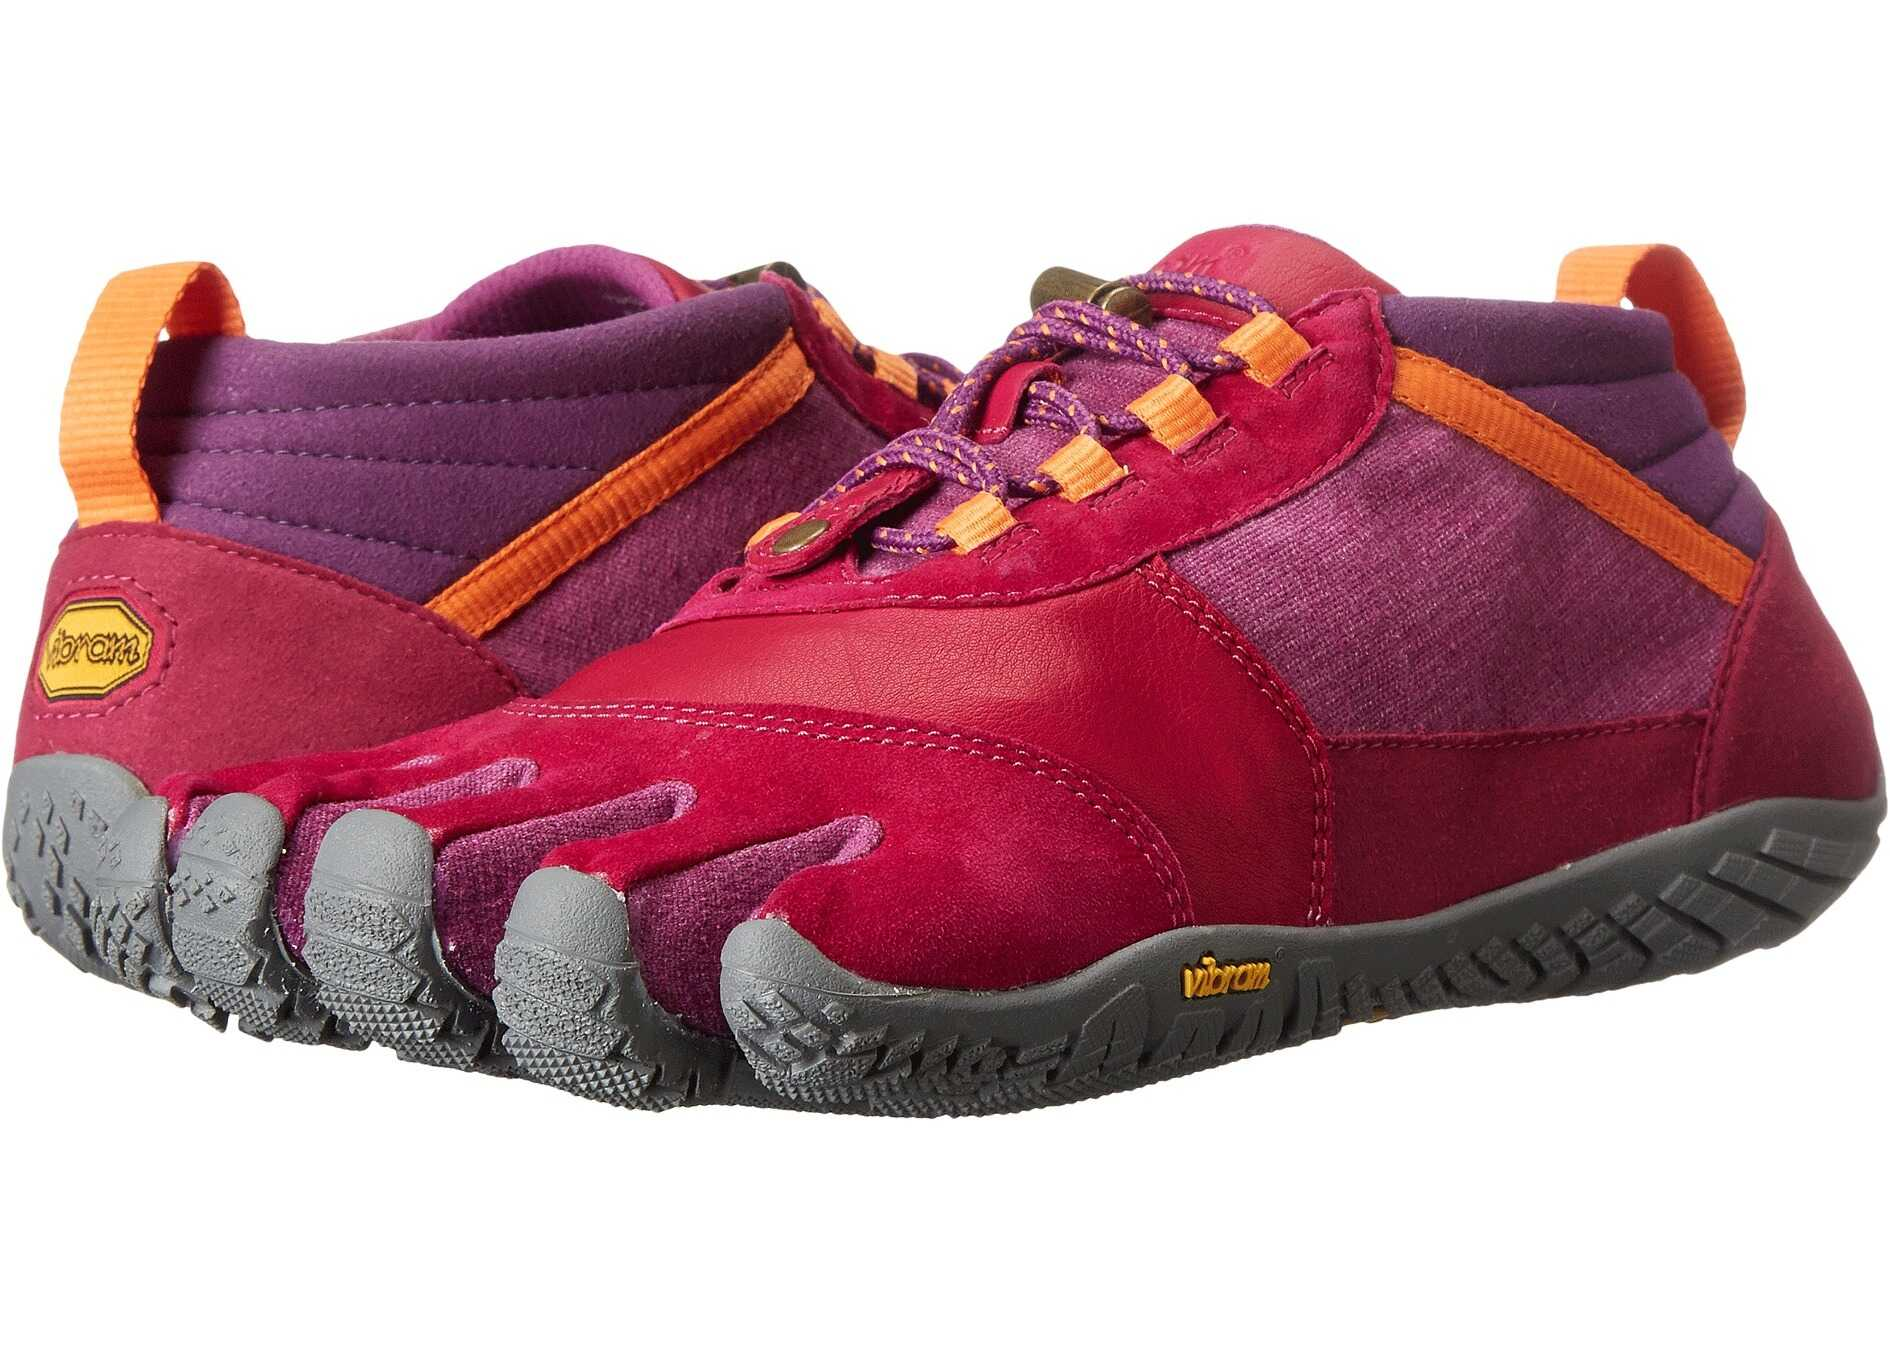 Vibram FiveFingers Trek Ascent LR Pink/Grey/Orange